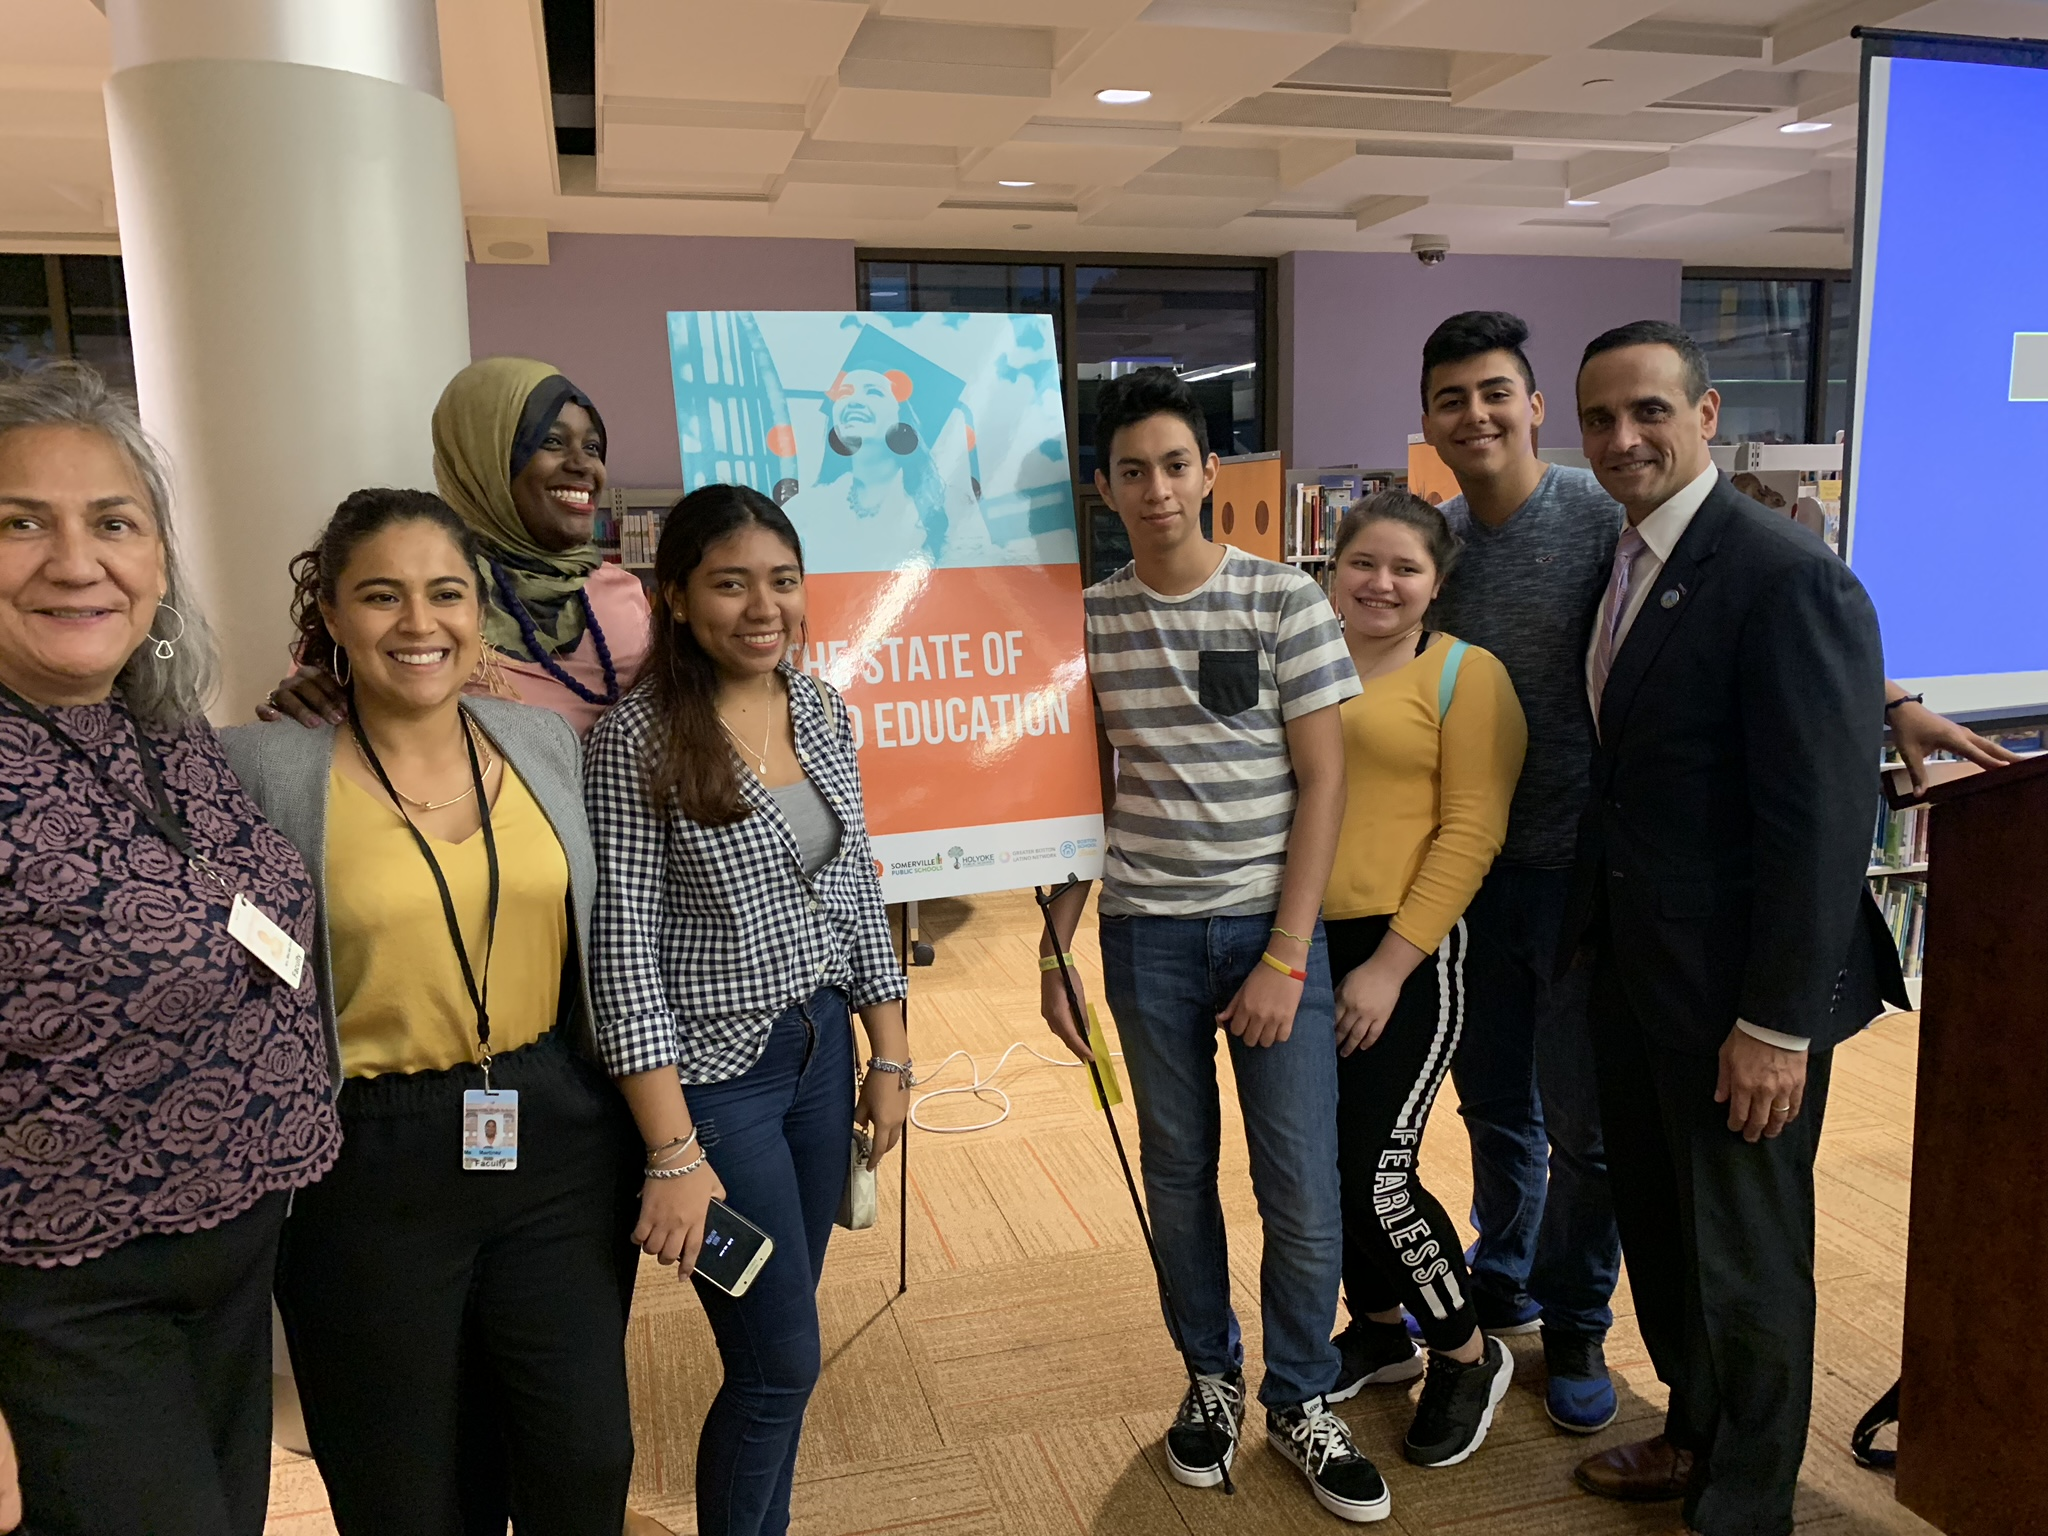 Enroot staff and students pictured with Somerville Mayor Curtatone before the Town Hall.